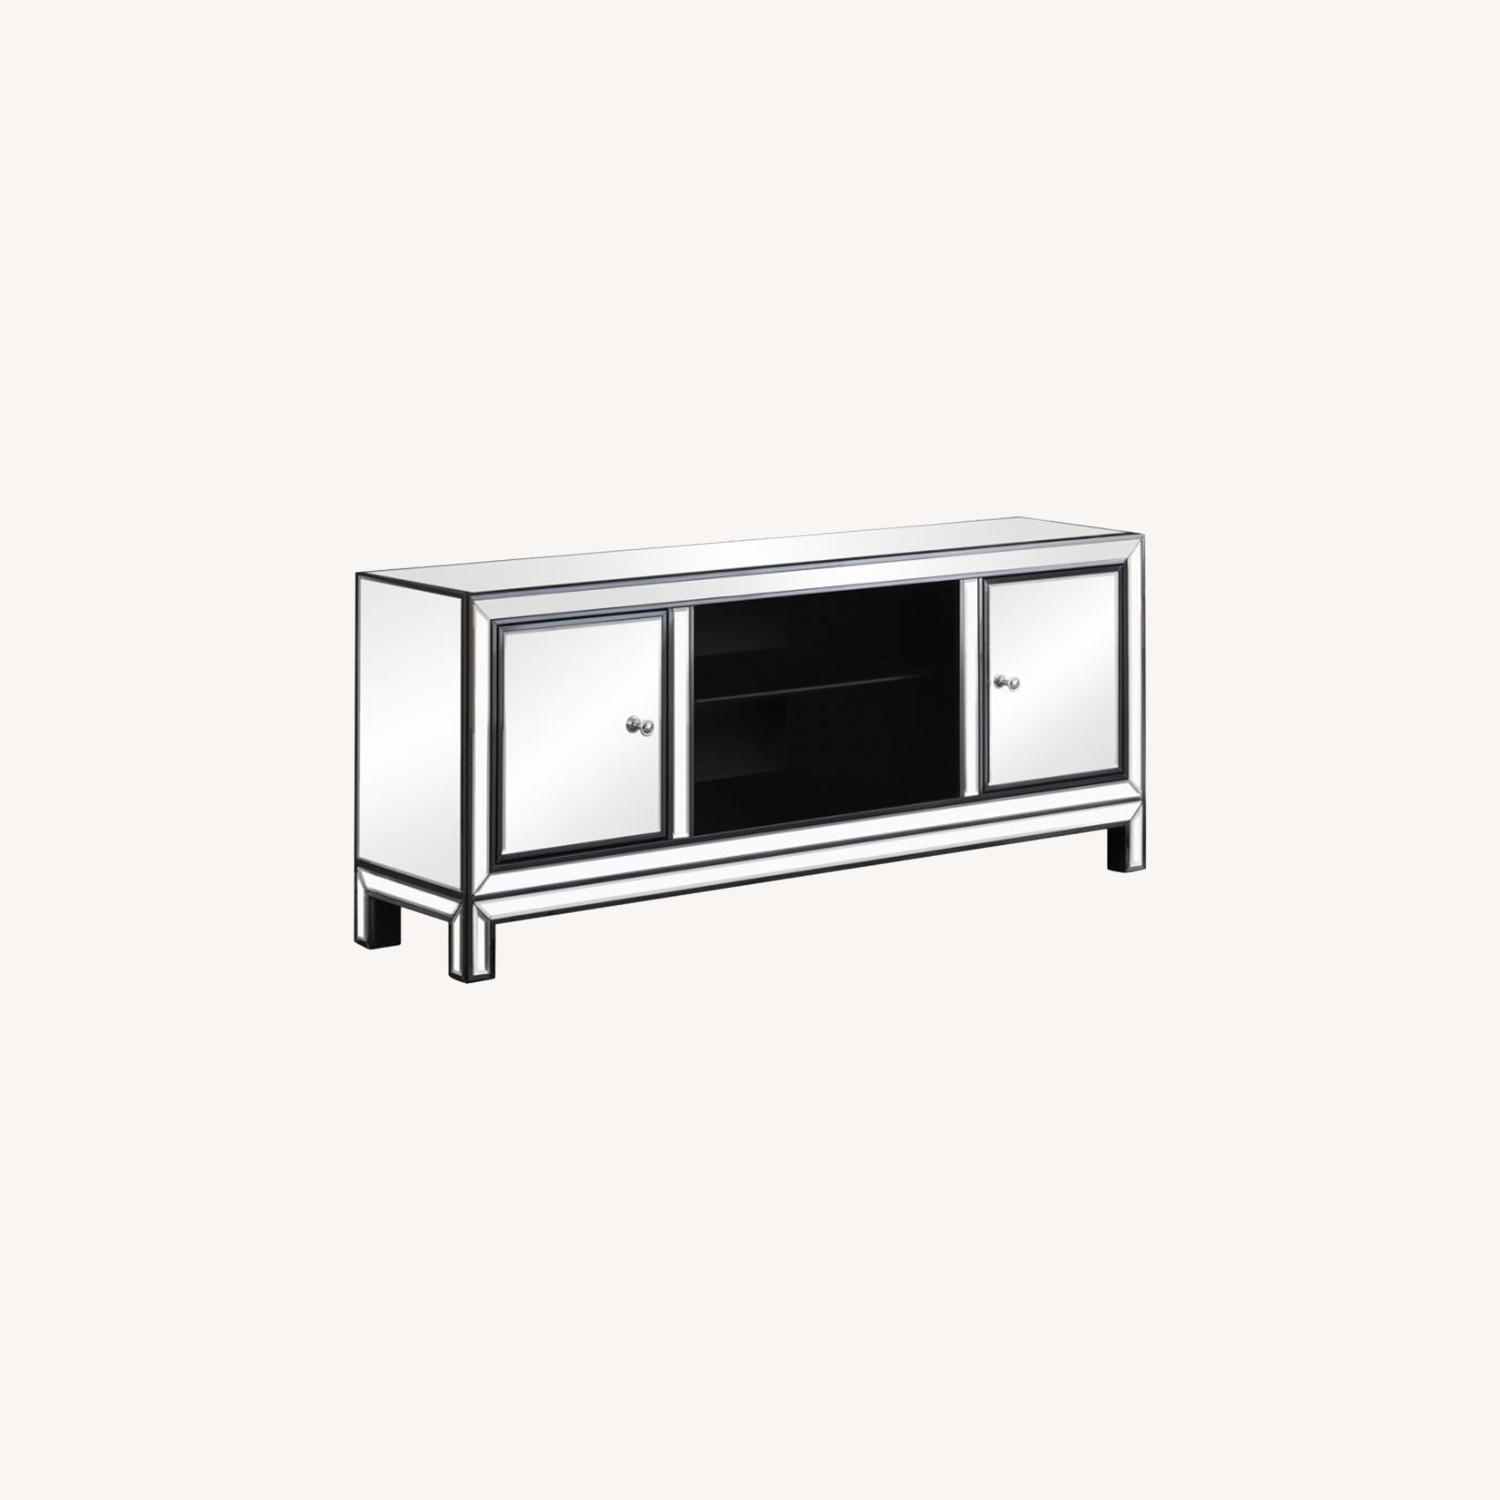 TV Console W/ Adjustable Shelf In Silver Finish - image-3